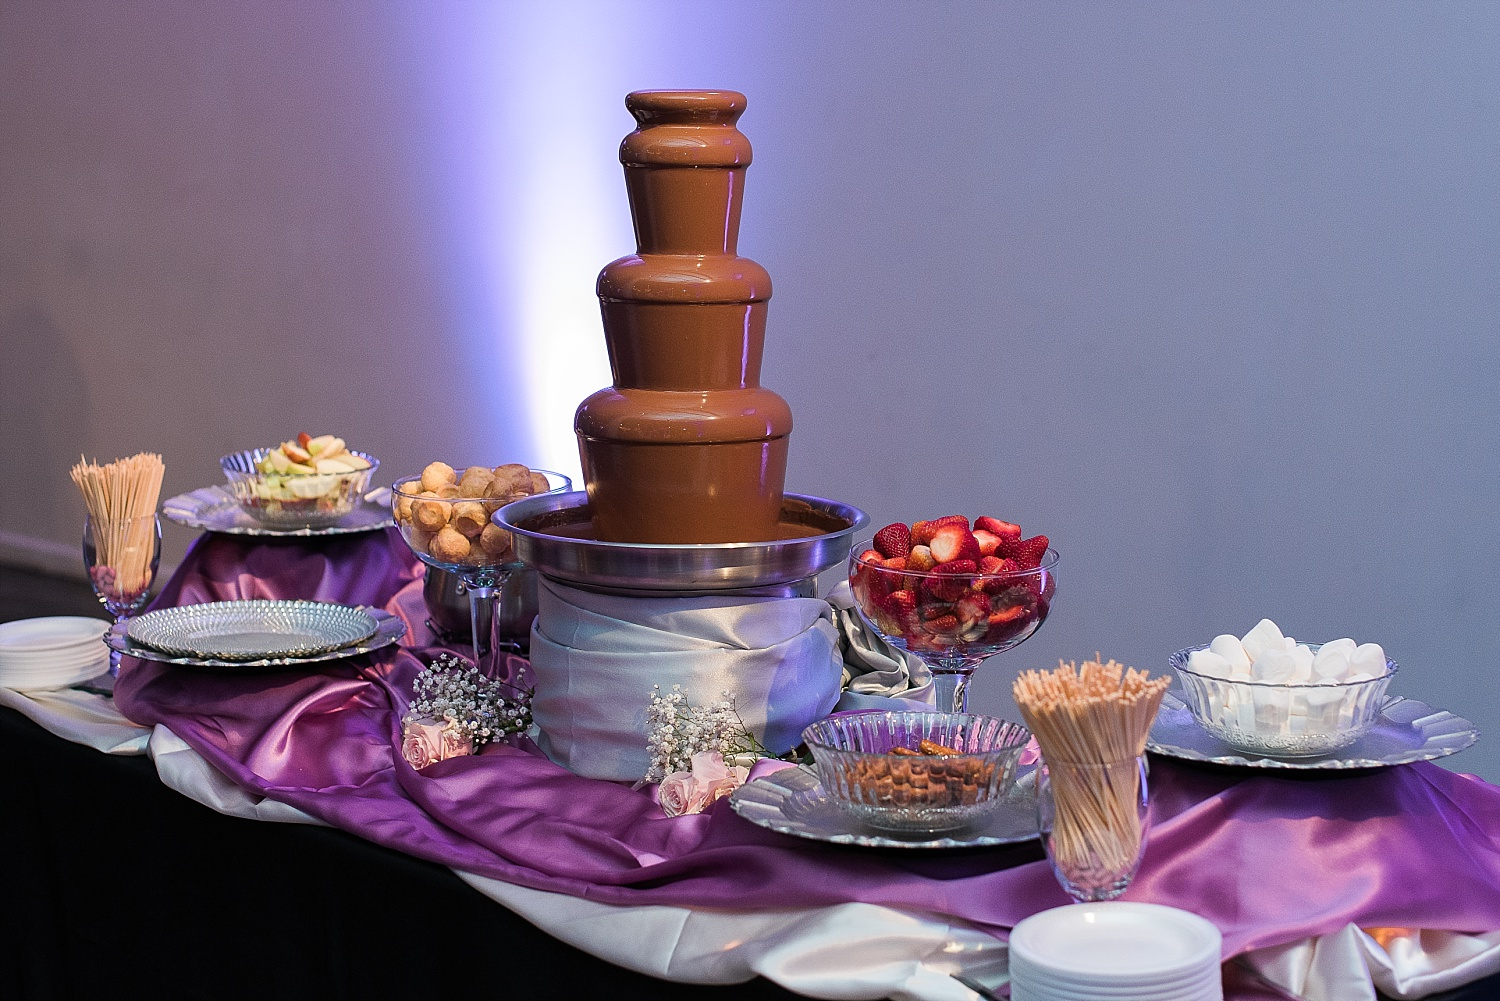 If you want a chocolate fountain, you MUST check out the Louisville Chocolate Fountain!